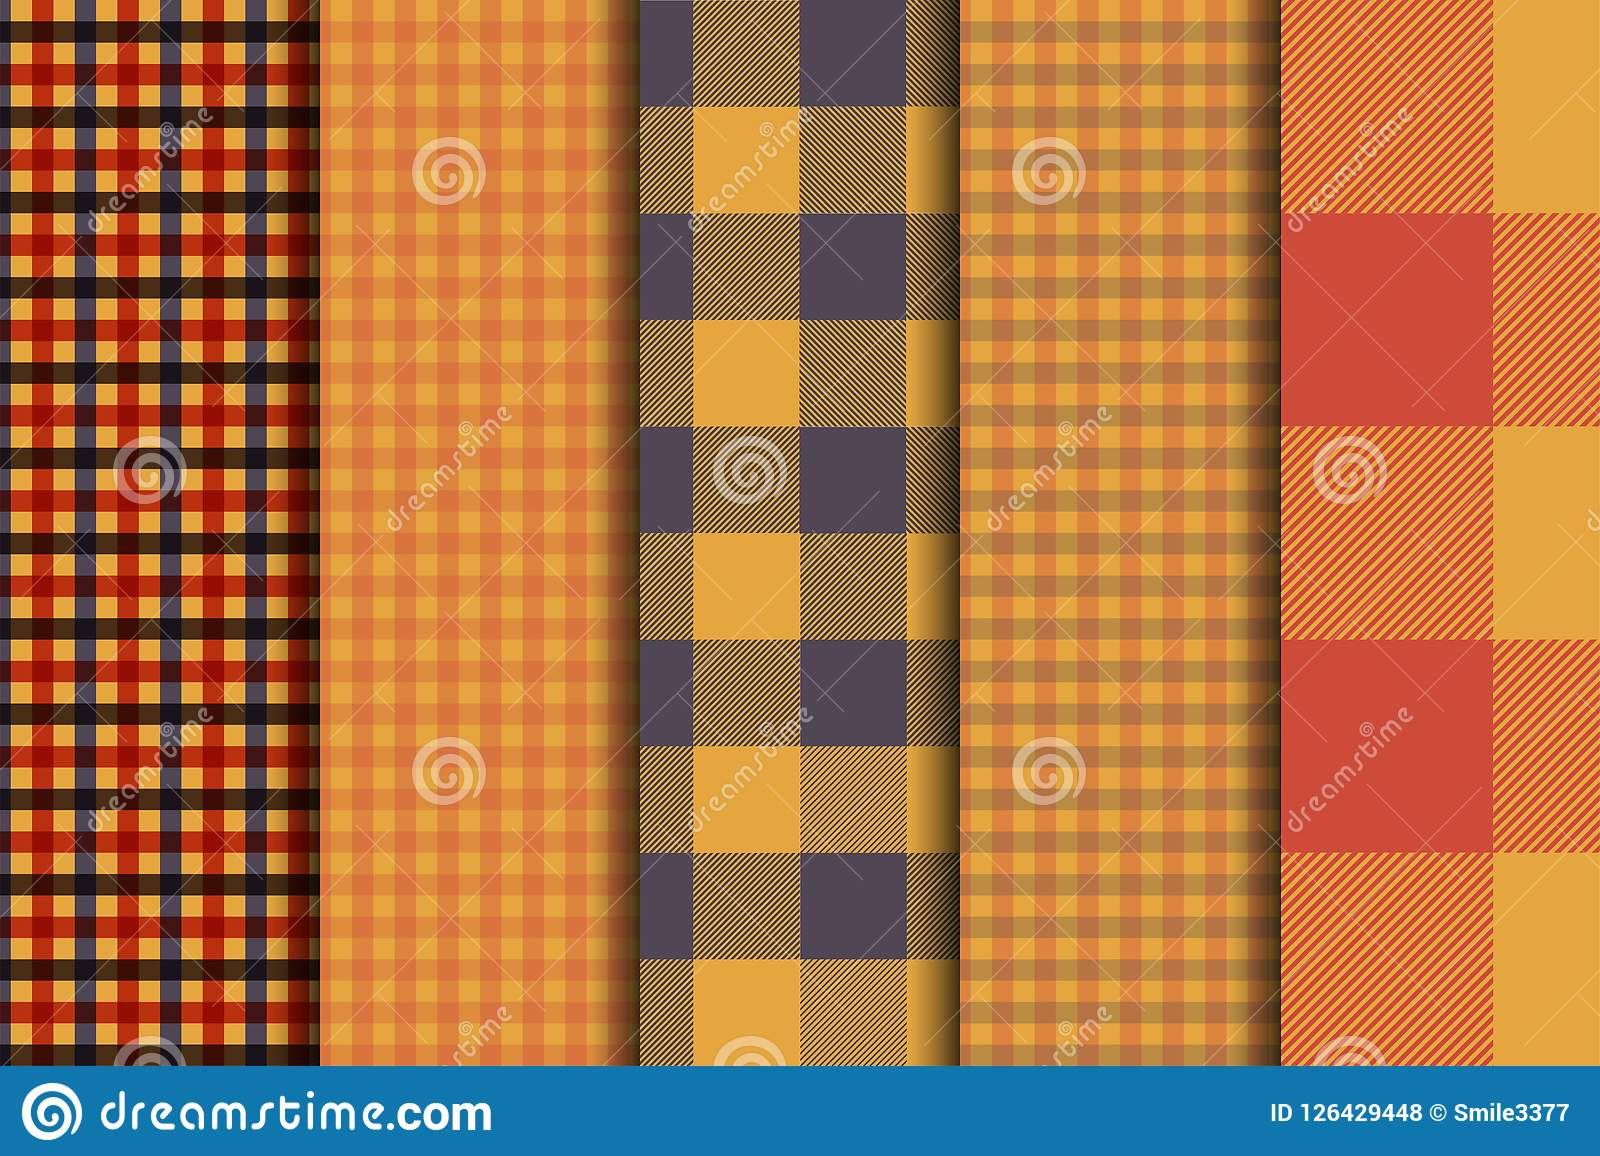 Set of 5 options tartan seamless pattern backgrounds. Autumn color panel plaid.